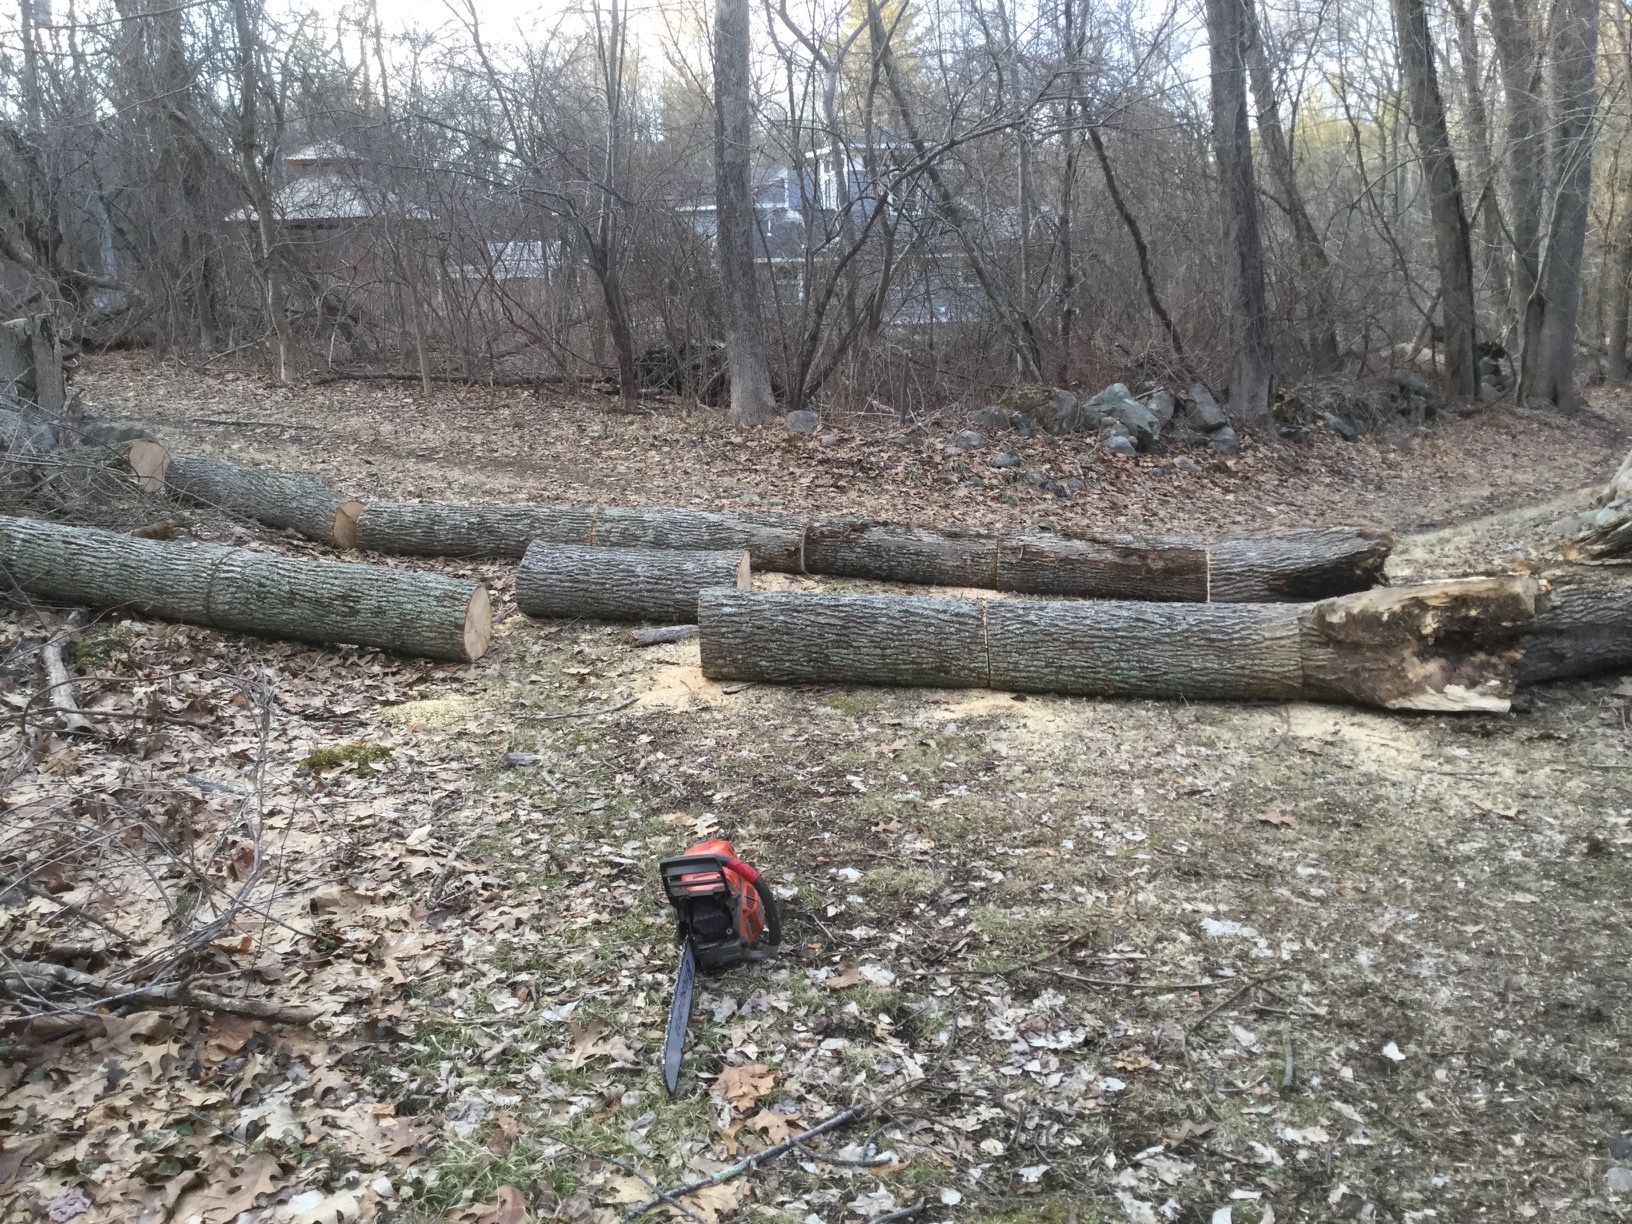 large sawn logs of fallen tree trunks, with chainsaw